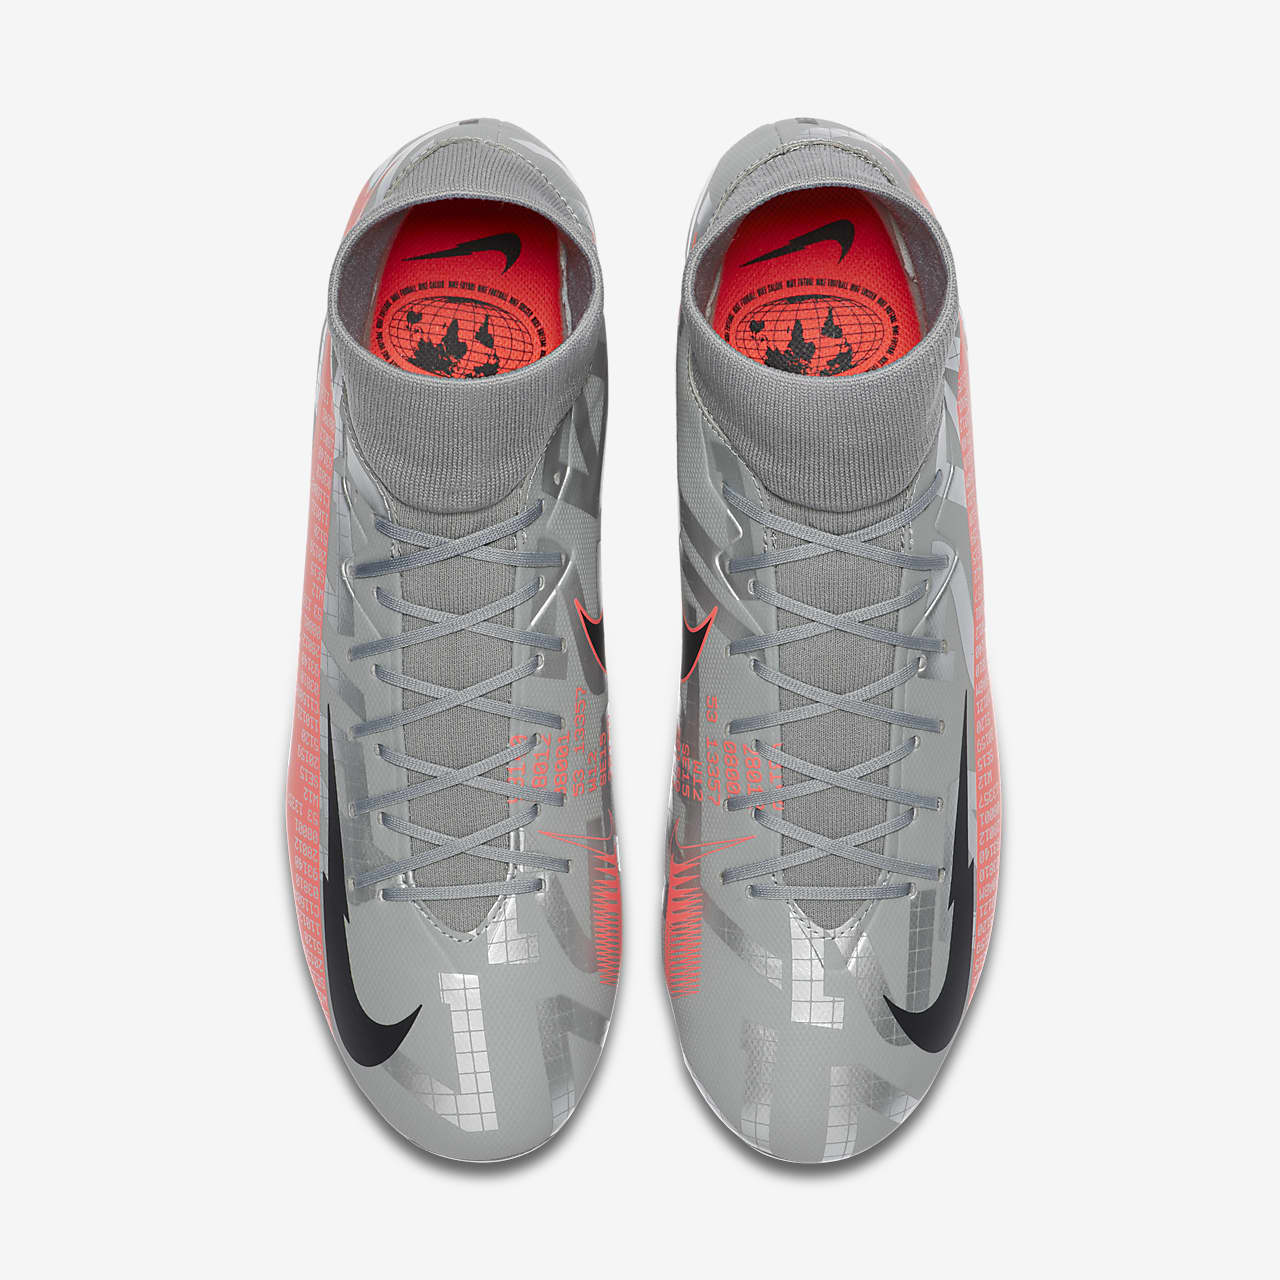 Chaussure de football multi surfaces à crampons Nike Mercurial Superfly 7 Academy MG